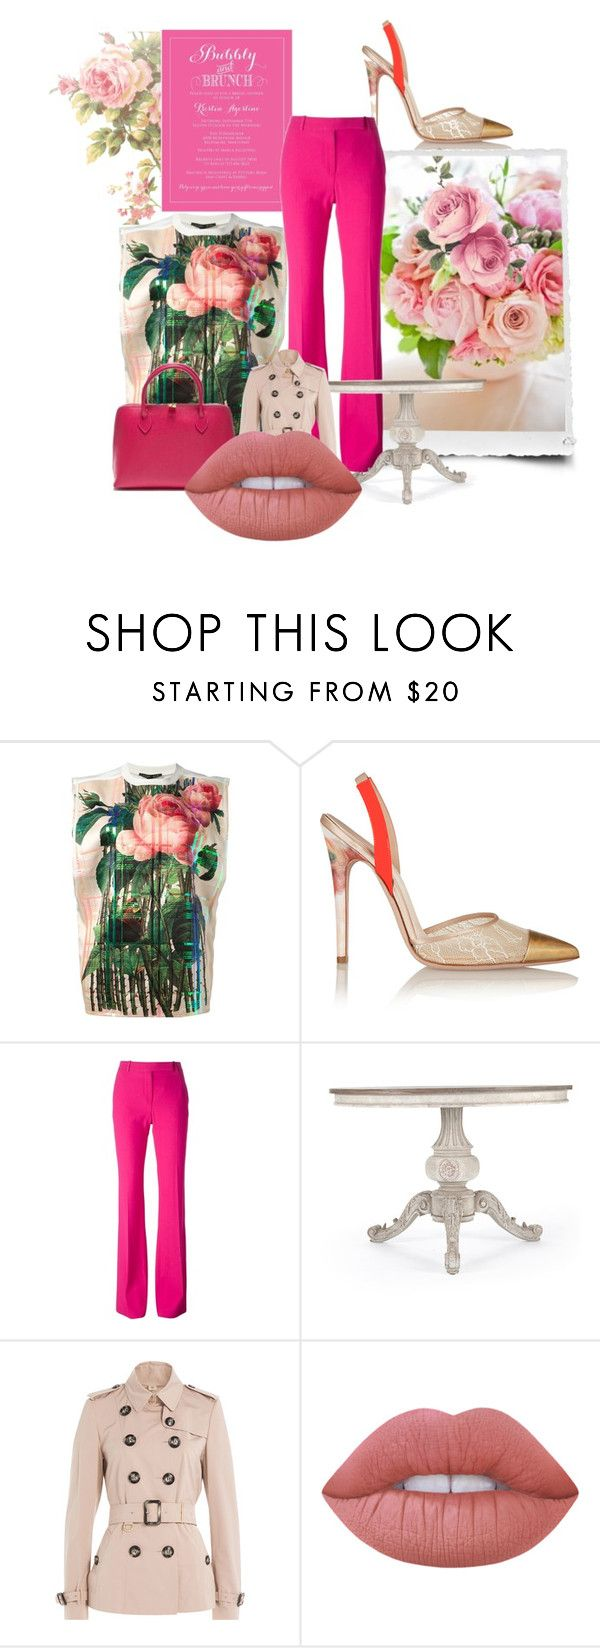 """""""And We'll Have Brunch!"""" by the-house-of-kasin ❤ liked on Polyvore featuring Yohan Kim, Giambattista Valli, Renata Corsi, Alexander McQueen, Burberry and Lime Crime"""